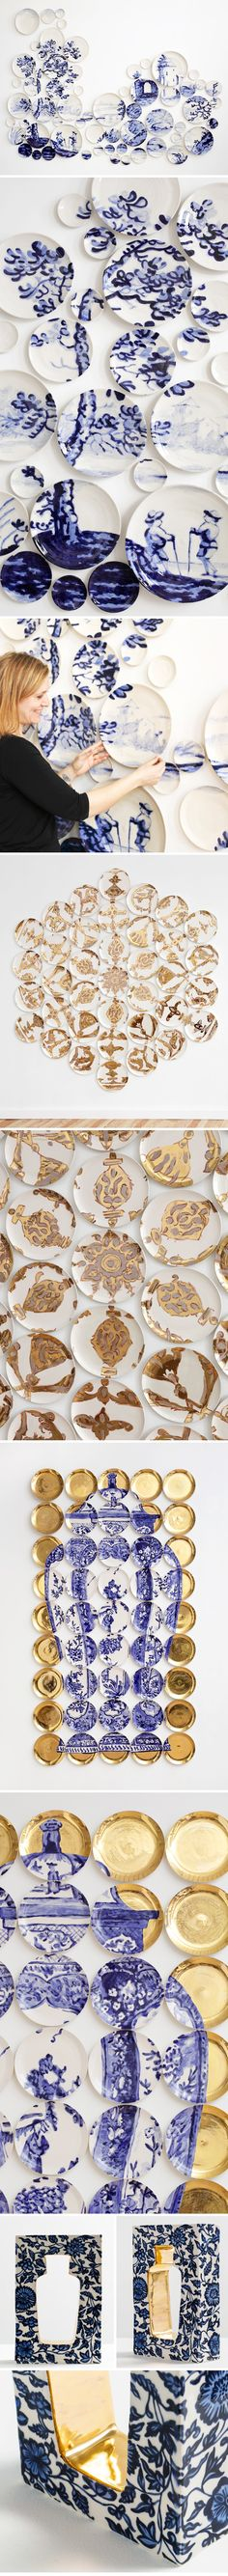 molly hatch - fine art ceramic installations <3